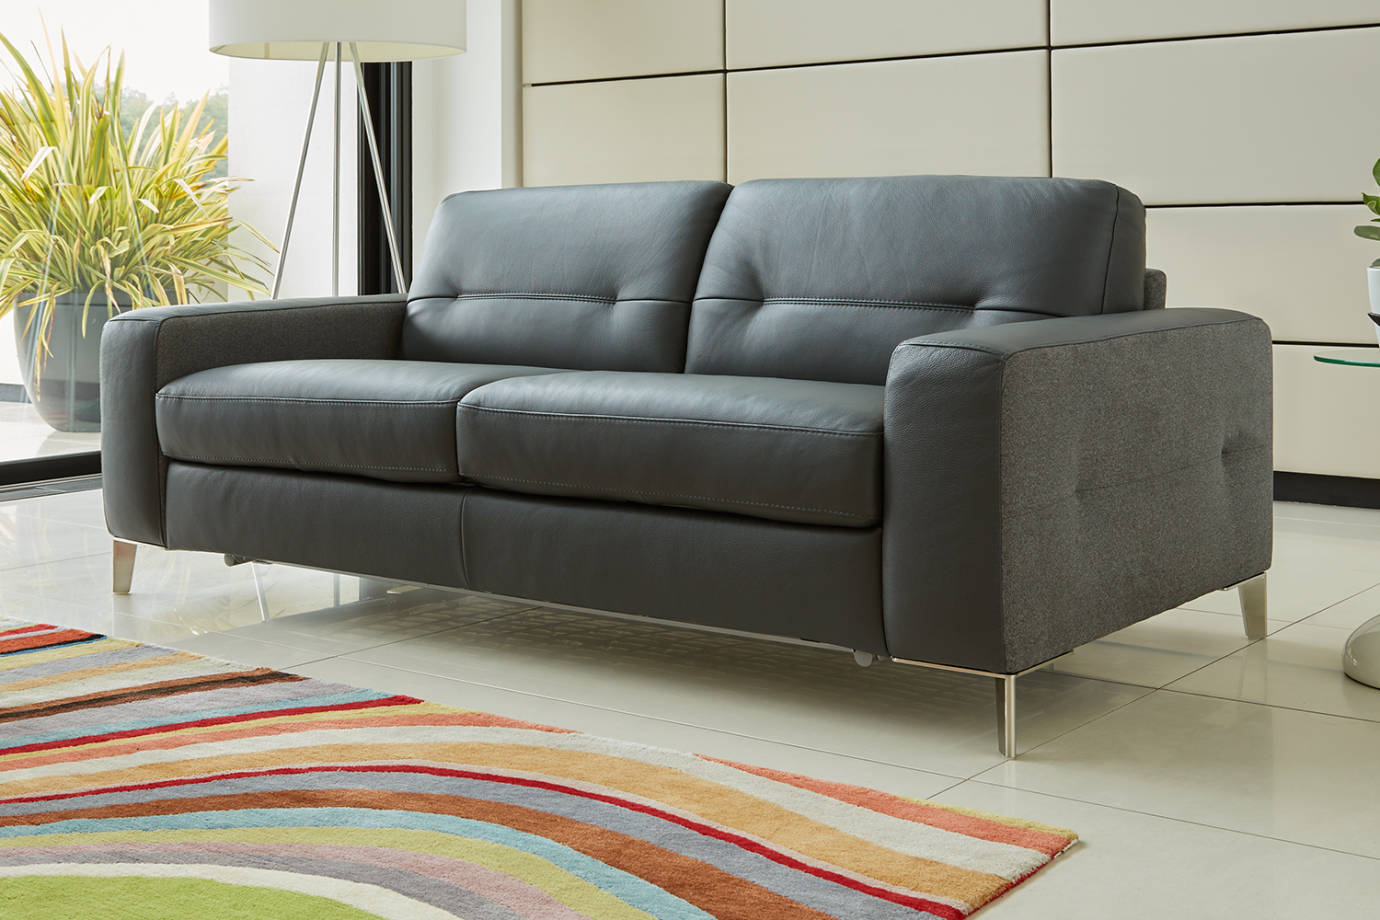 Grey fabric and leather sofa